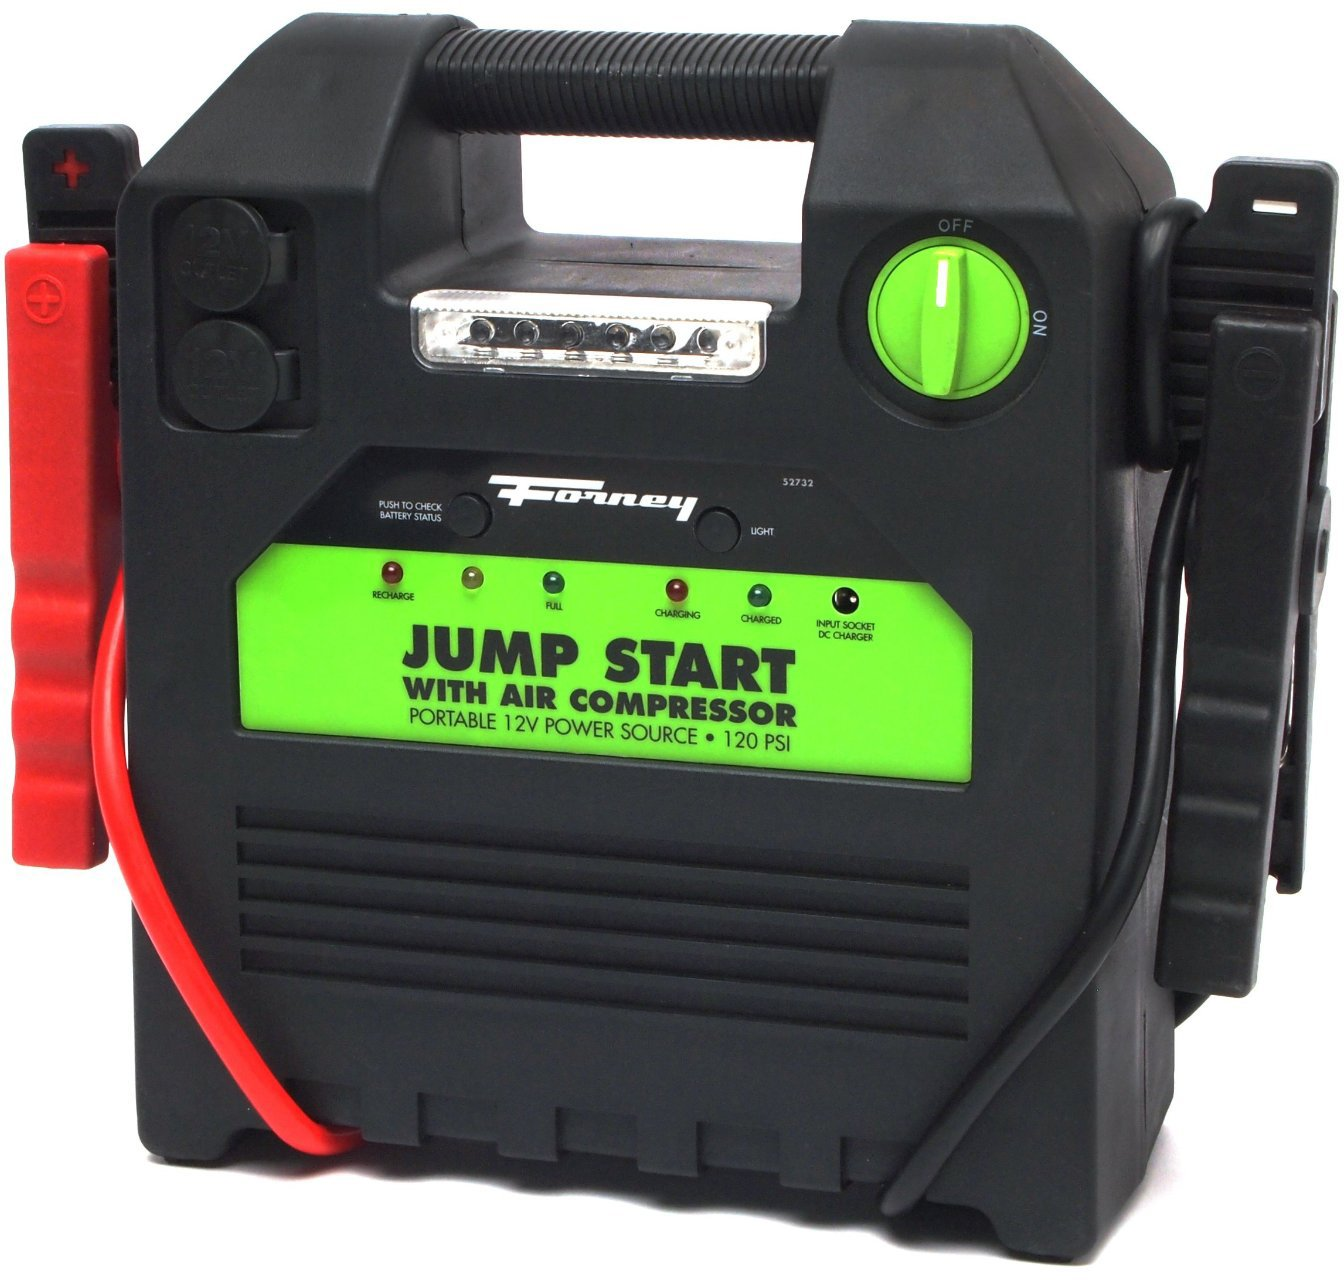 Forney 52732 Battery Booster Pack with 120 PSI Air Compressor, 18-Amp Hour, 12-Volt Jump Start by Forney (Image #10)